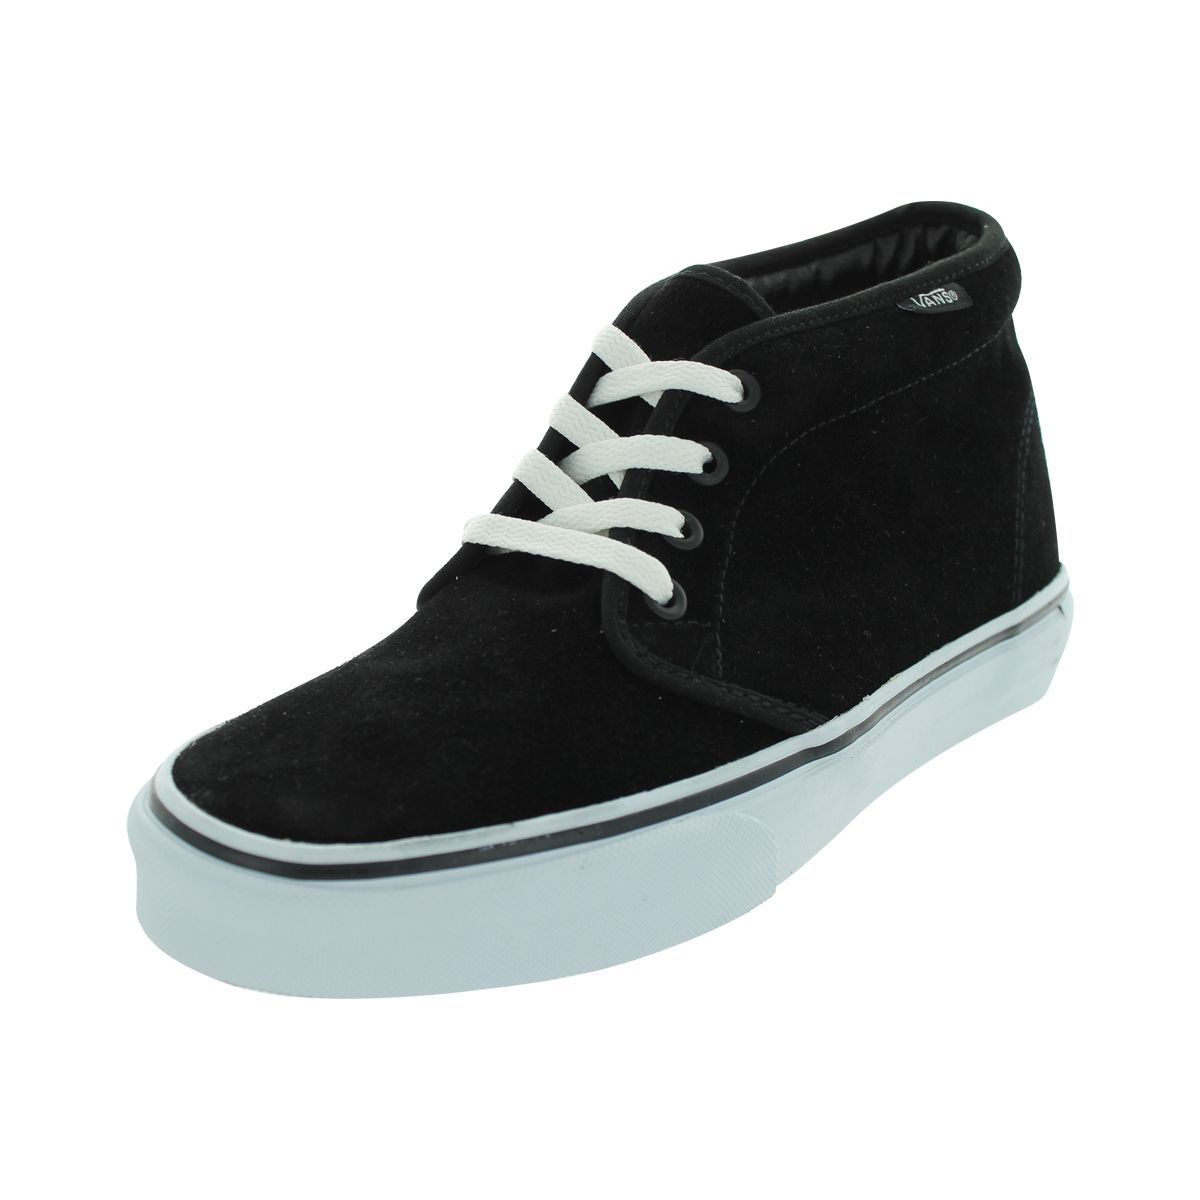 6984ad1abbe9de Updated chukka boot with all the qualities of a sneaker from Vans